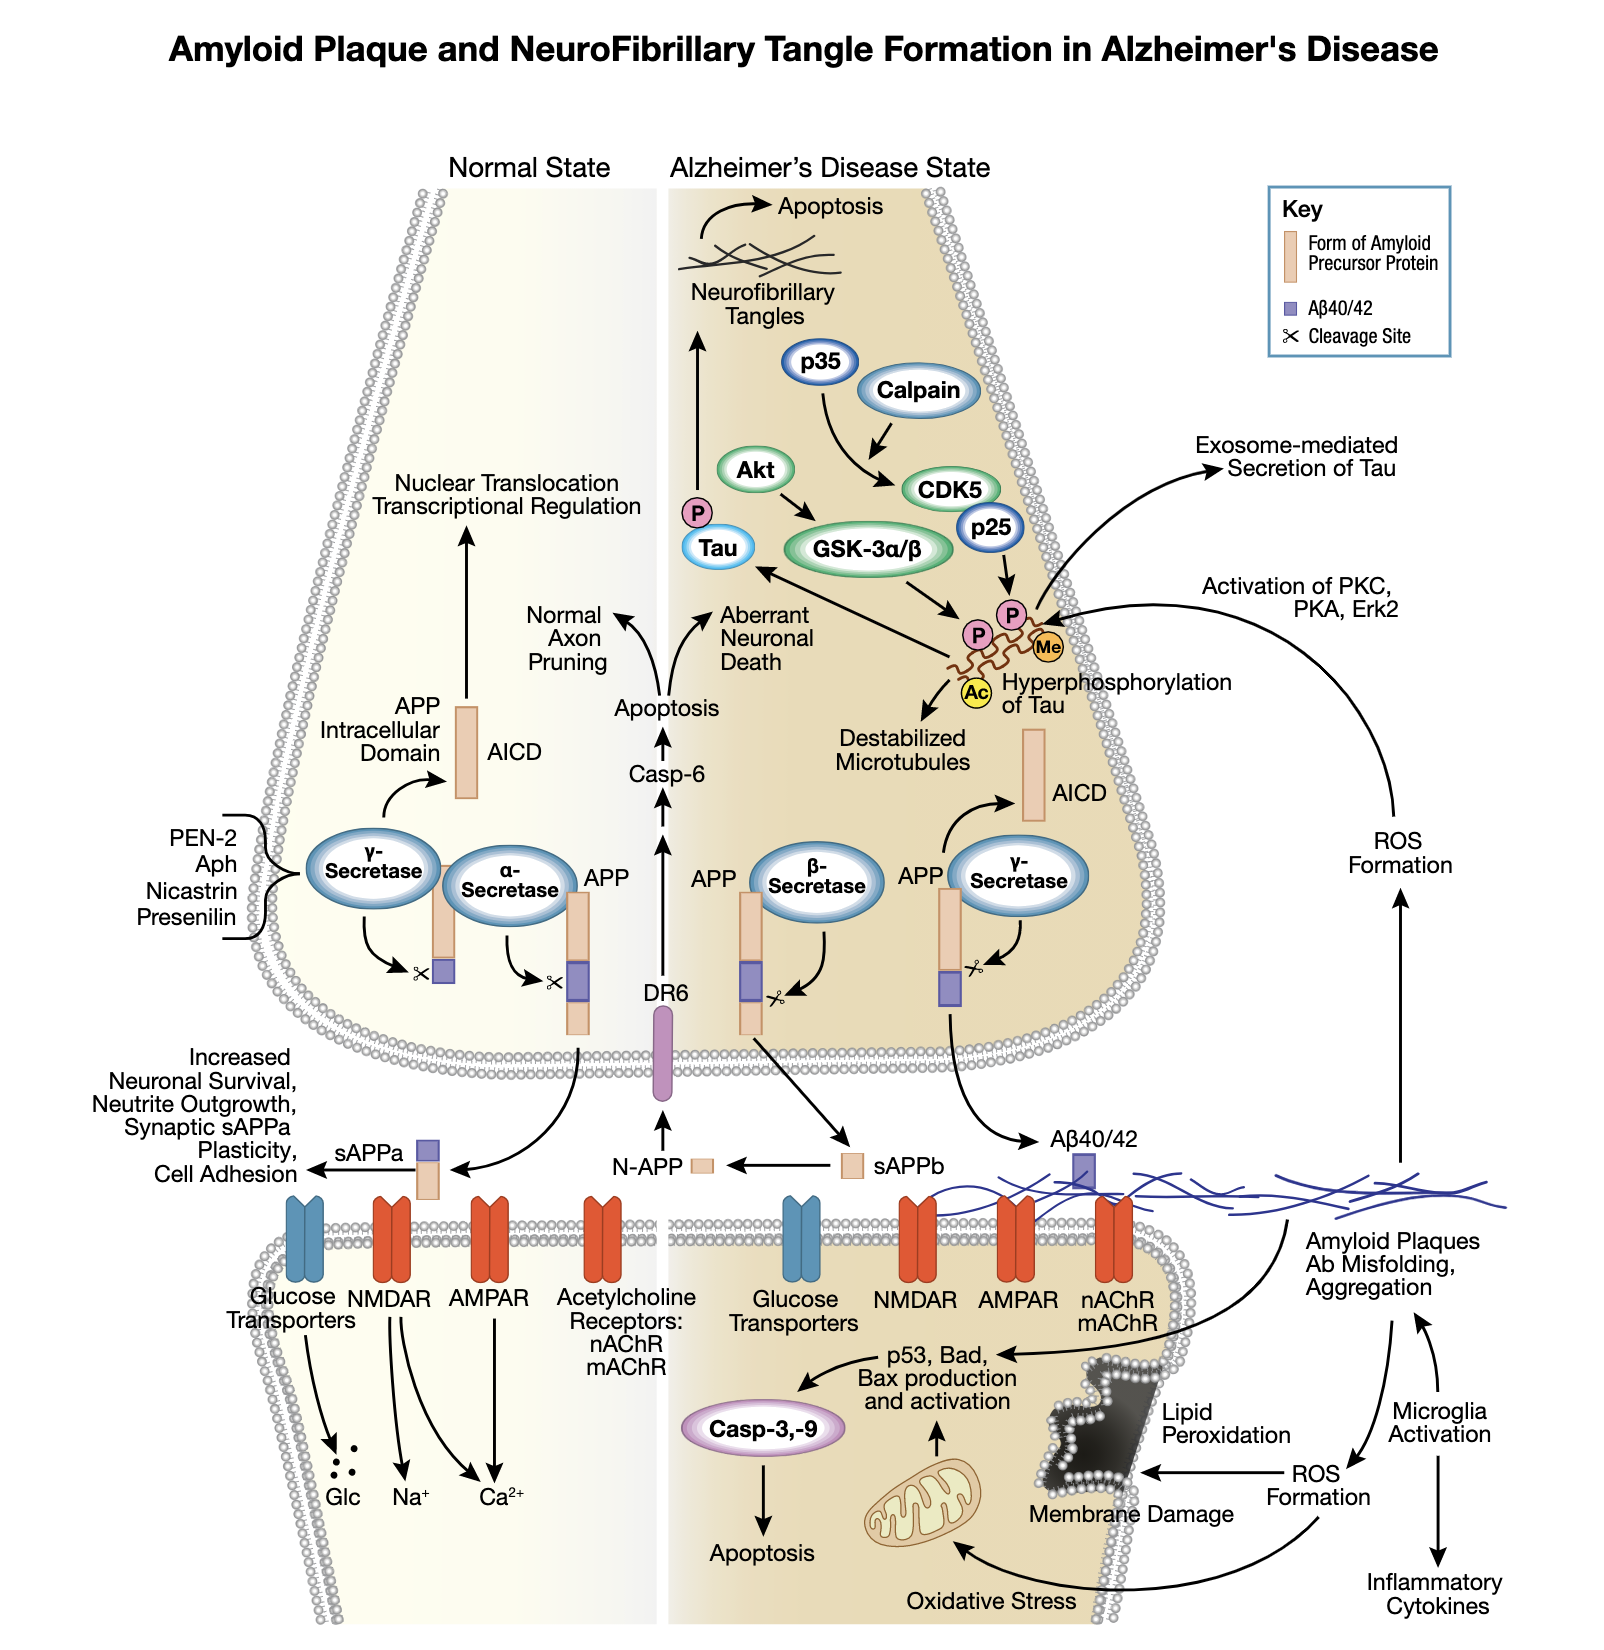 Amyloid Plaque and Neurofibrillary Tangles in Alzheimer's Interactive Signaling Pathway